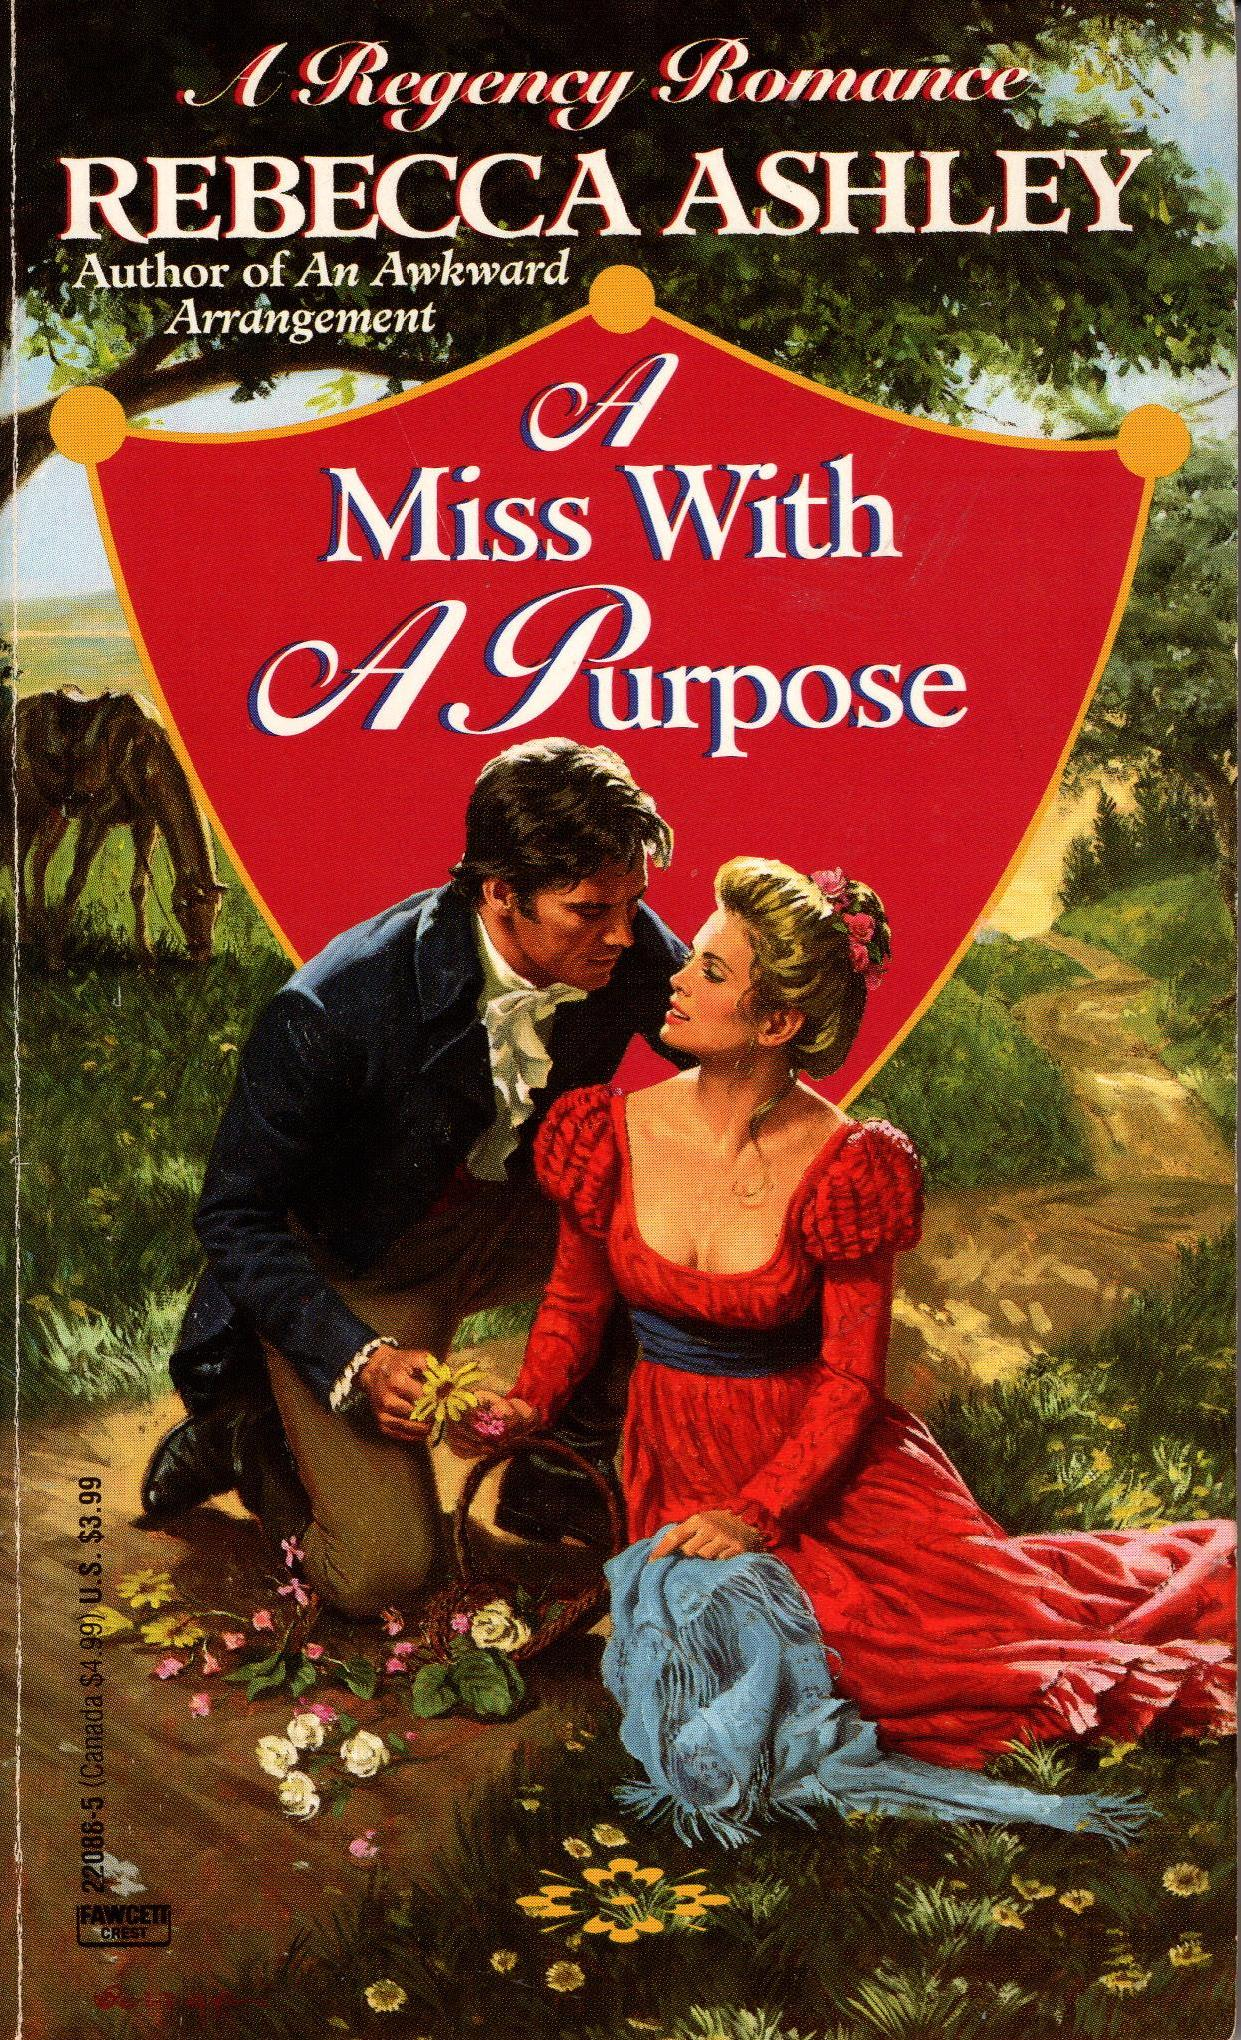 Image for MISS WITH A PURPOSE, A